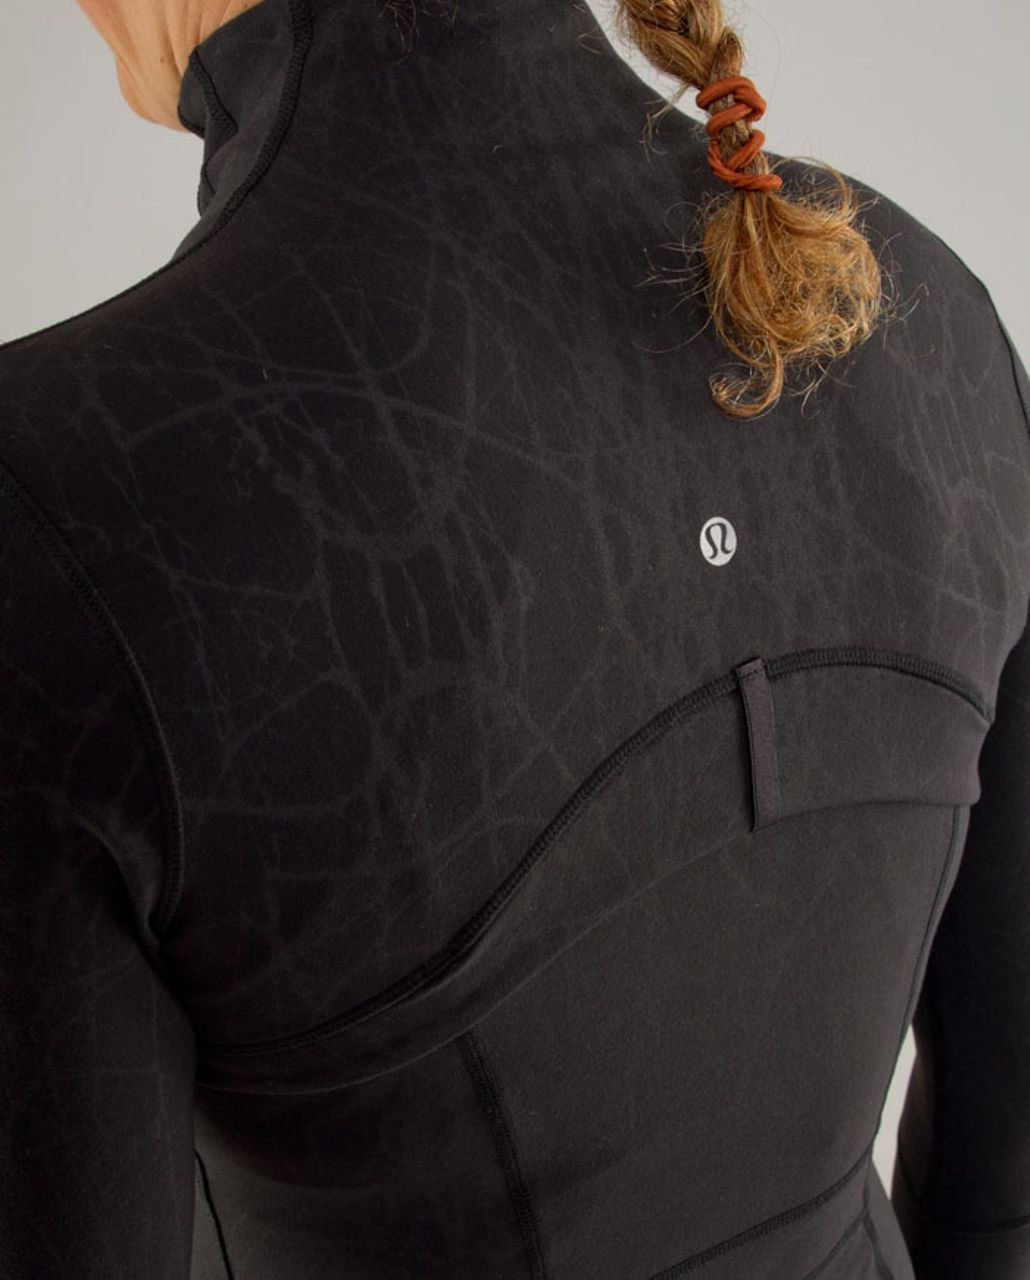 Lululemon Define Jacket - Black Nesting Black Bird Embossed